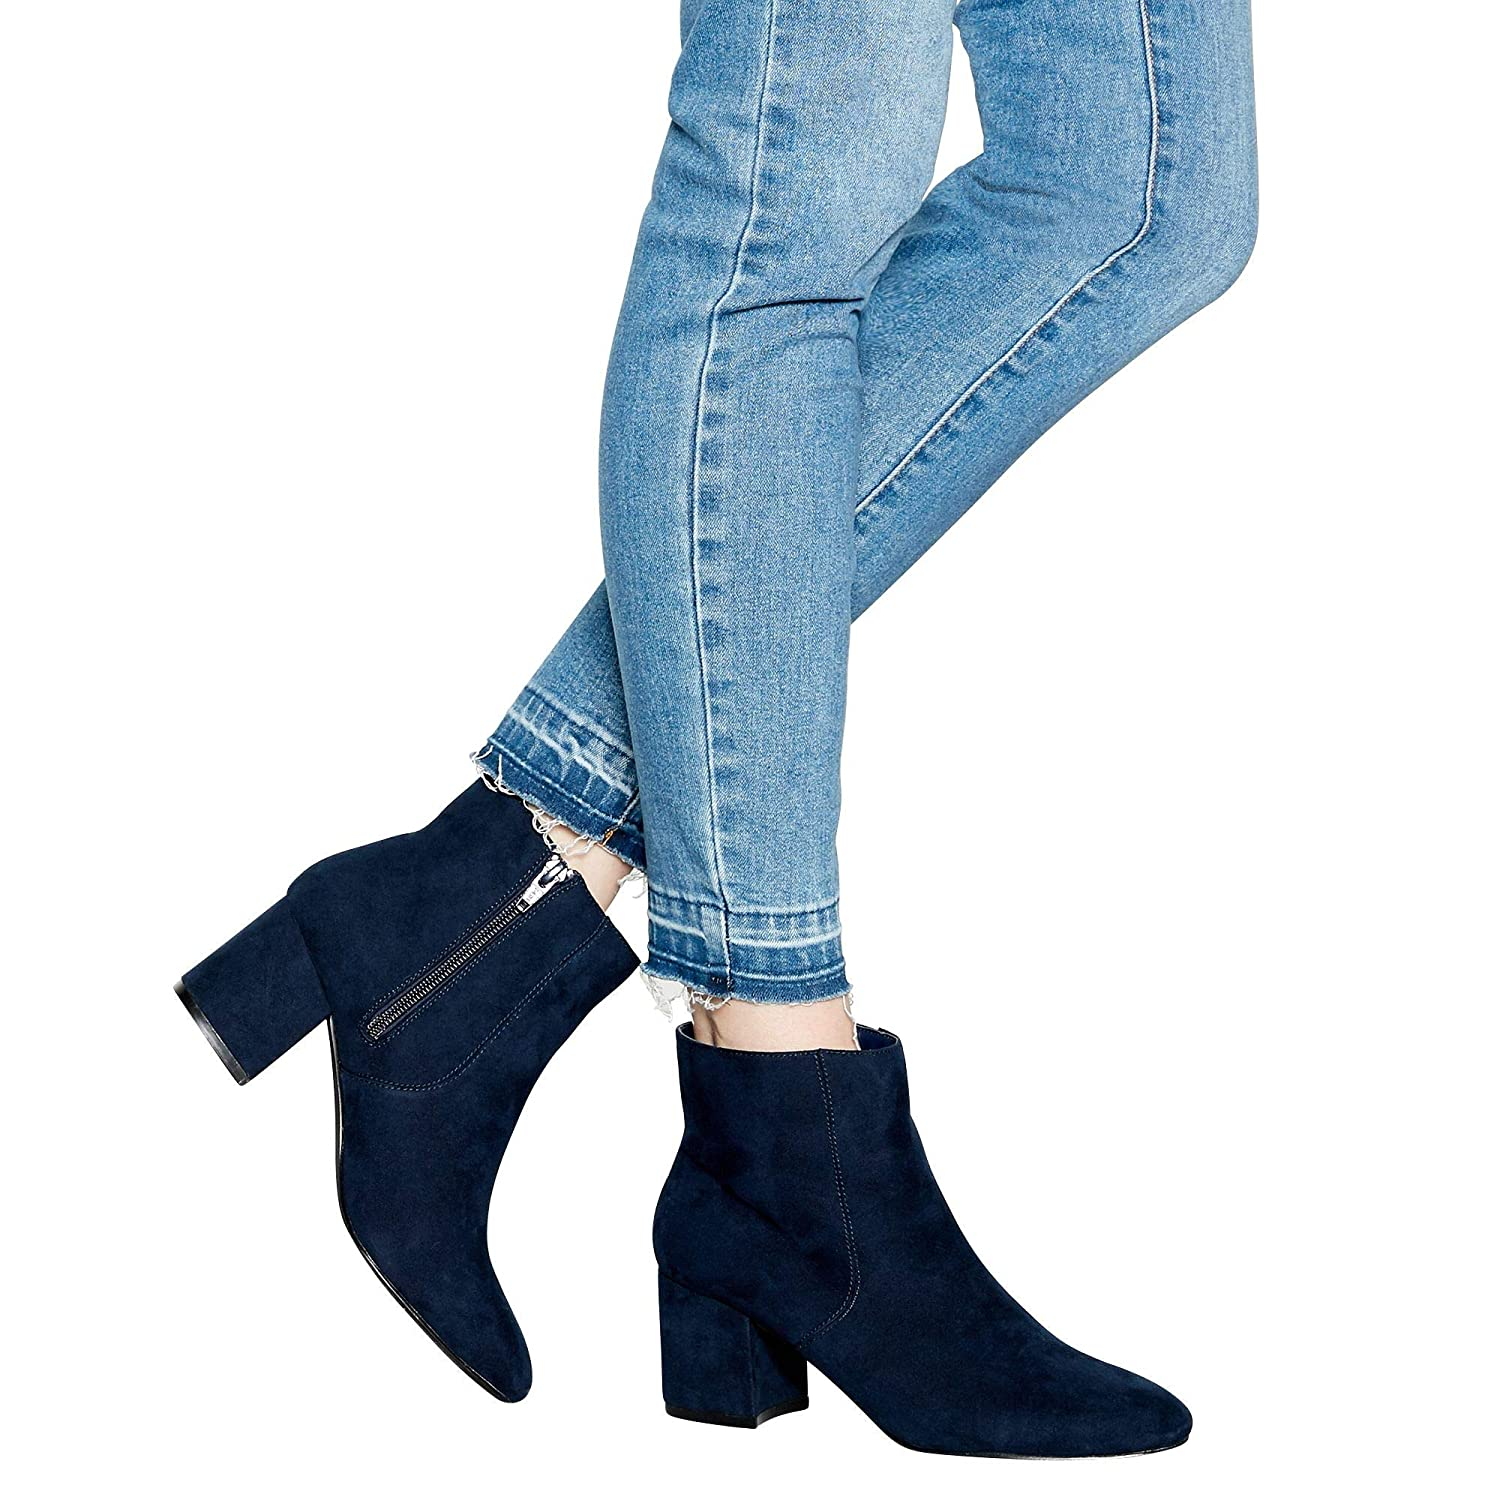 63afd95e0133f Principles Womens Navy Suedette 'Catrelle' Mid Block Heel Ankle ...